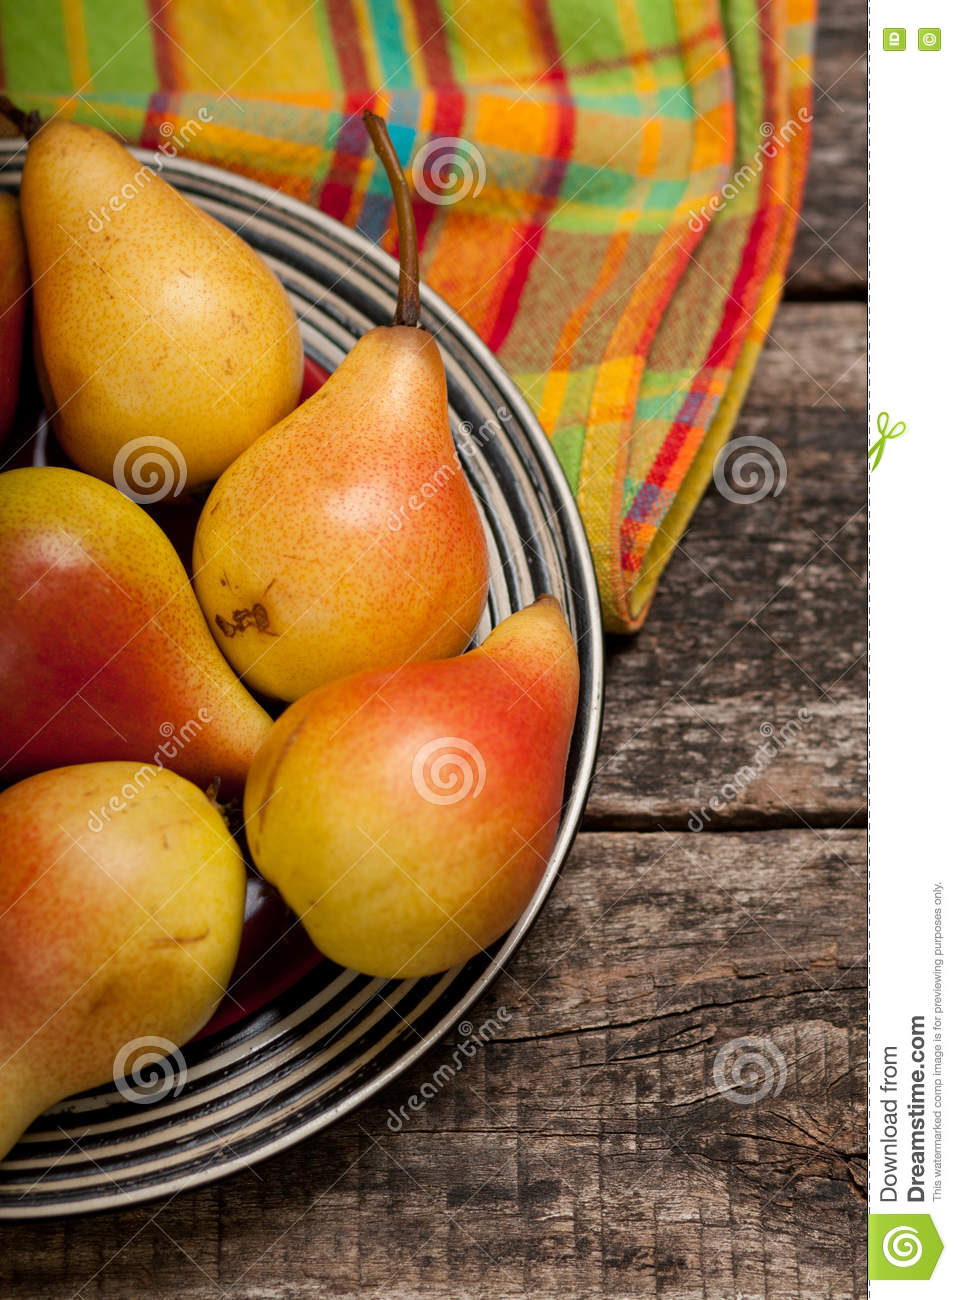 Pears on the dish and cloth on the old wood backing